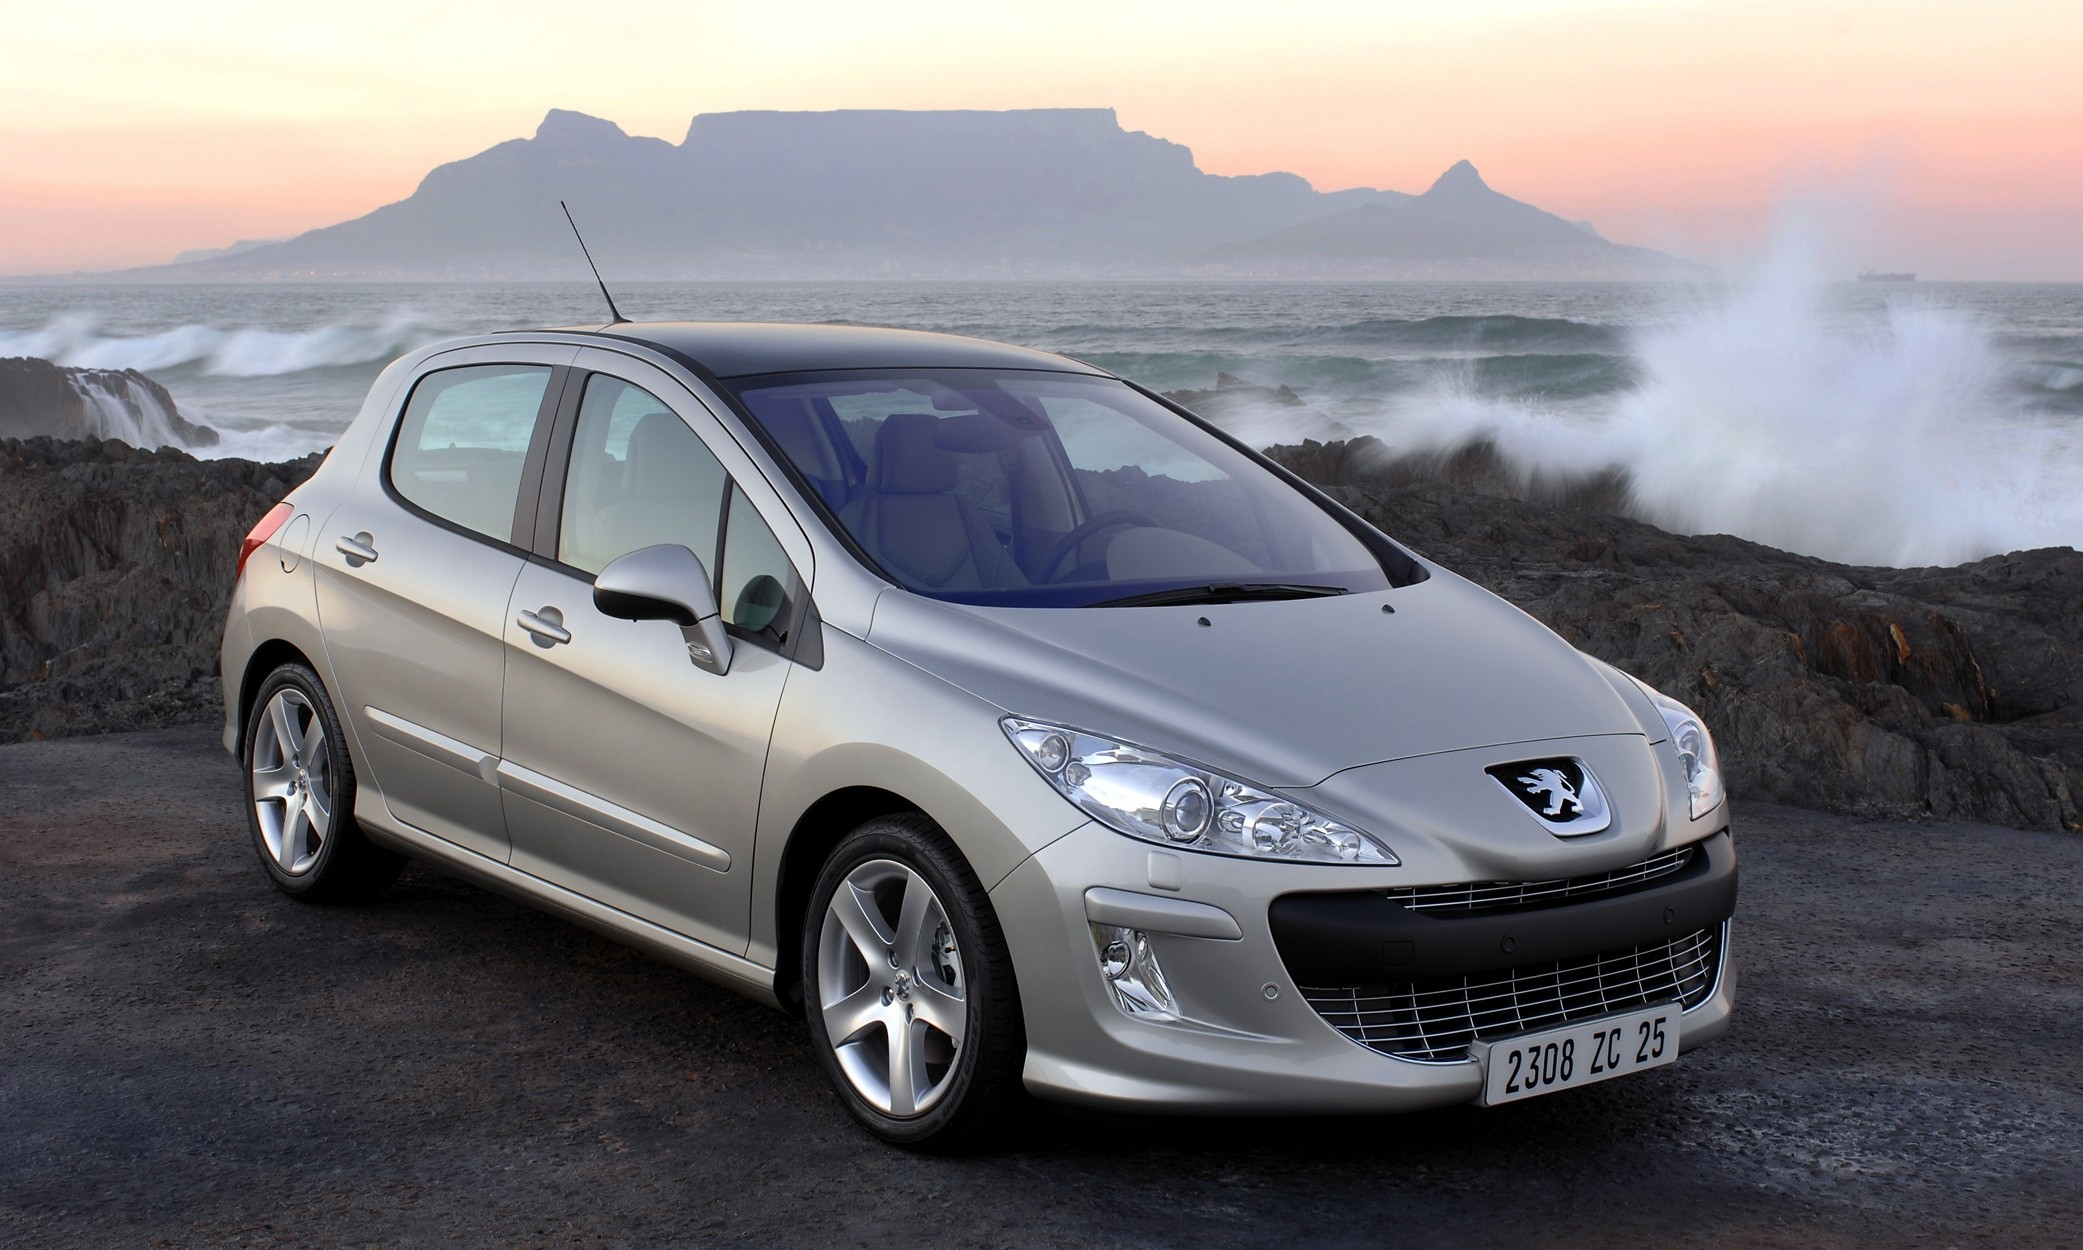 Peugeot 308 2.0 HDI Active